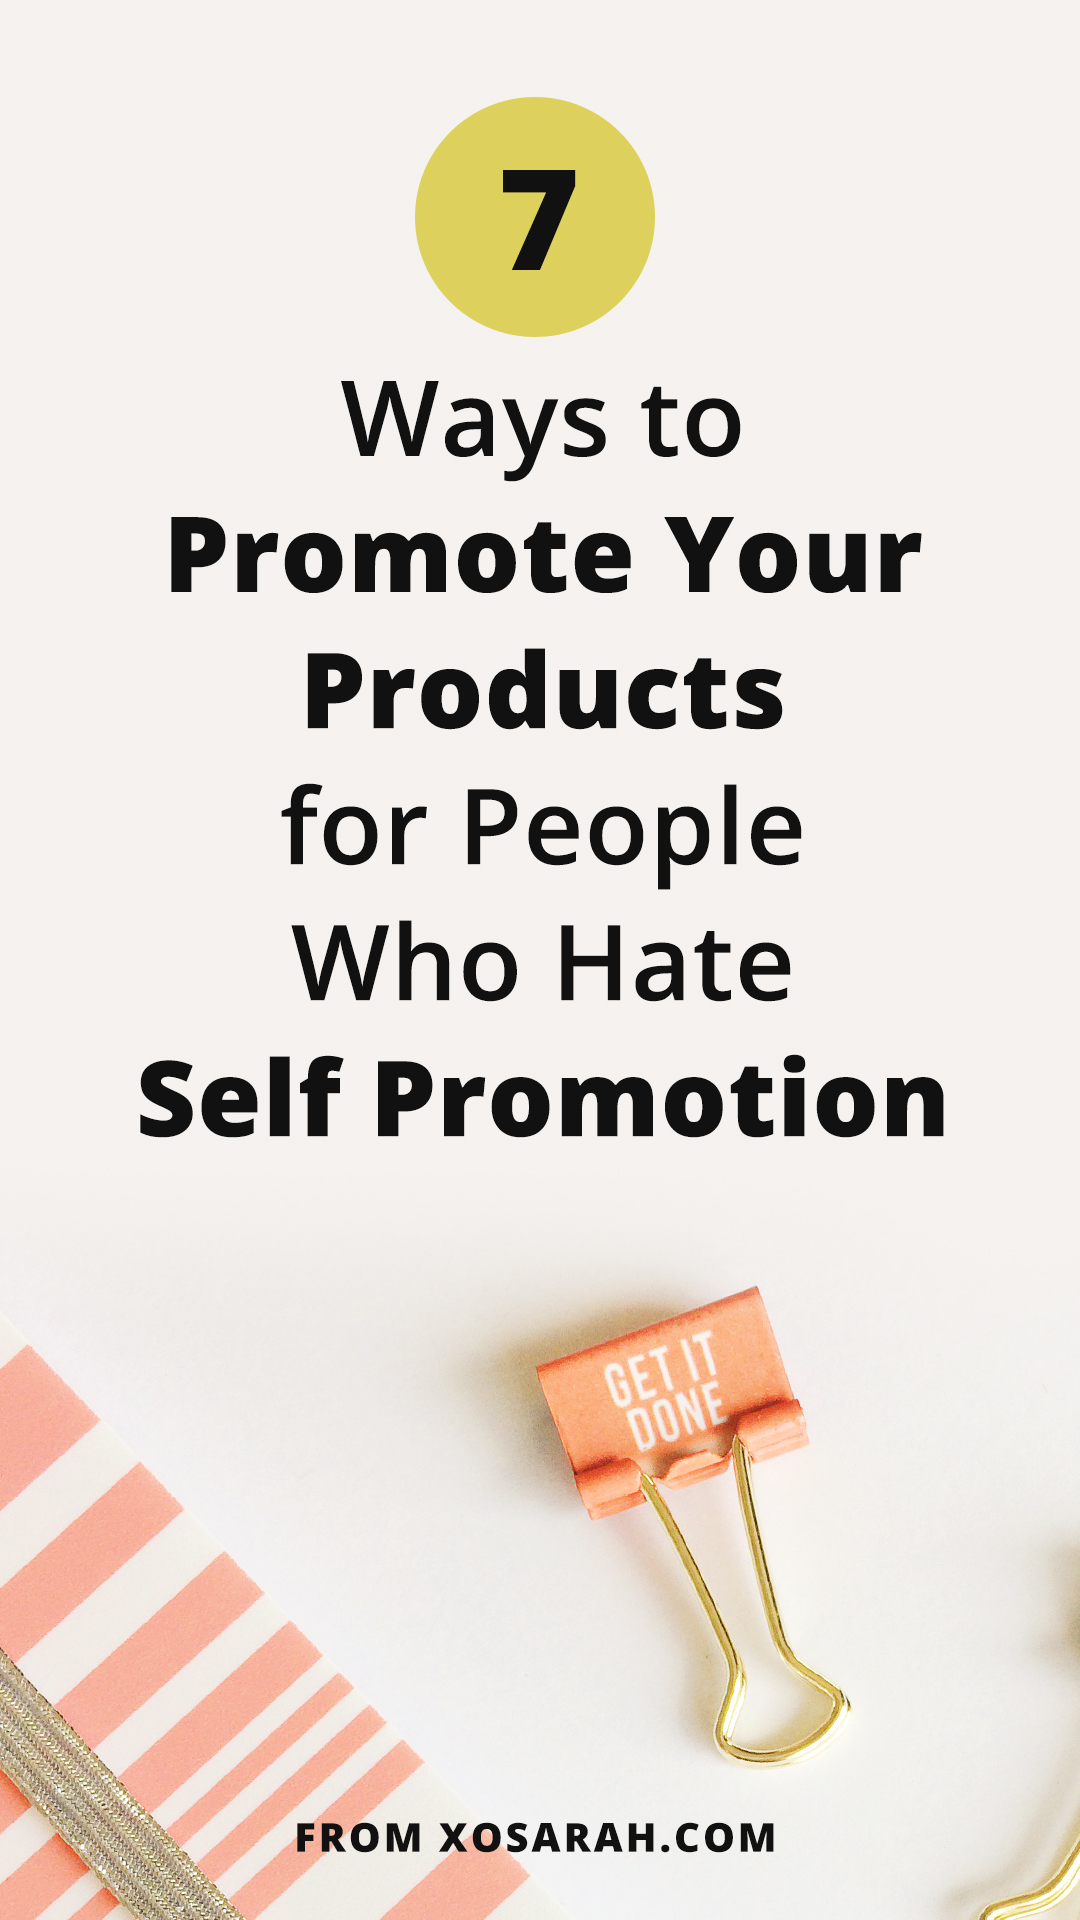 If the idea of promoting yourself or your stuff makes you cringe, here's how to market + grow your business even if you hate self-promotion. Unique ideas to help market your creative products.